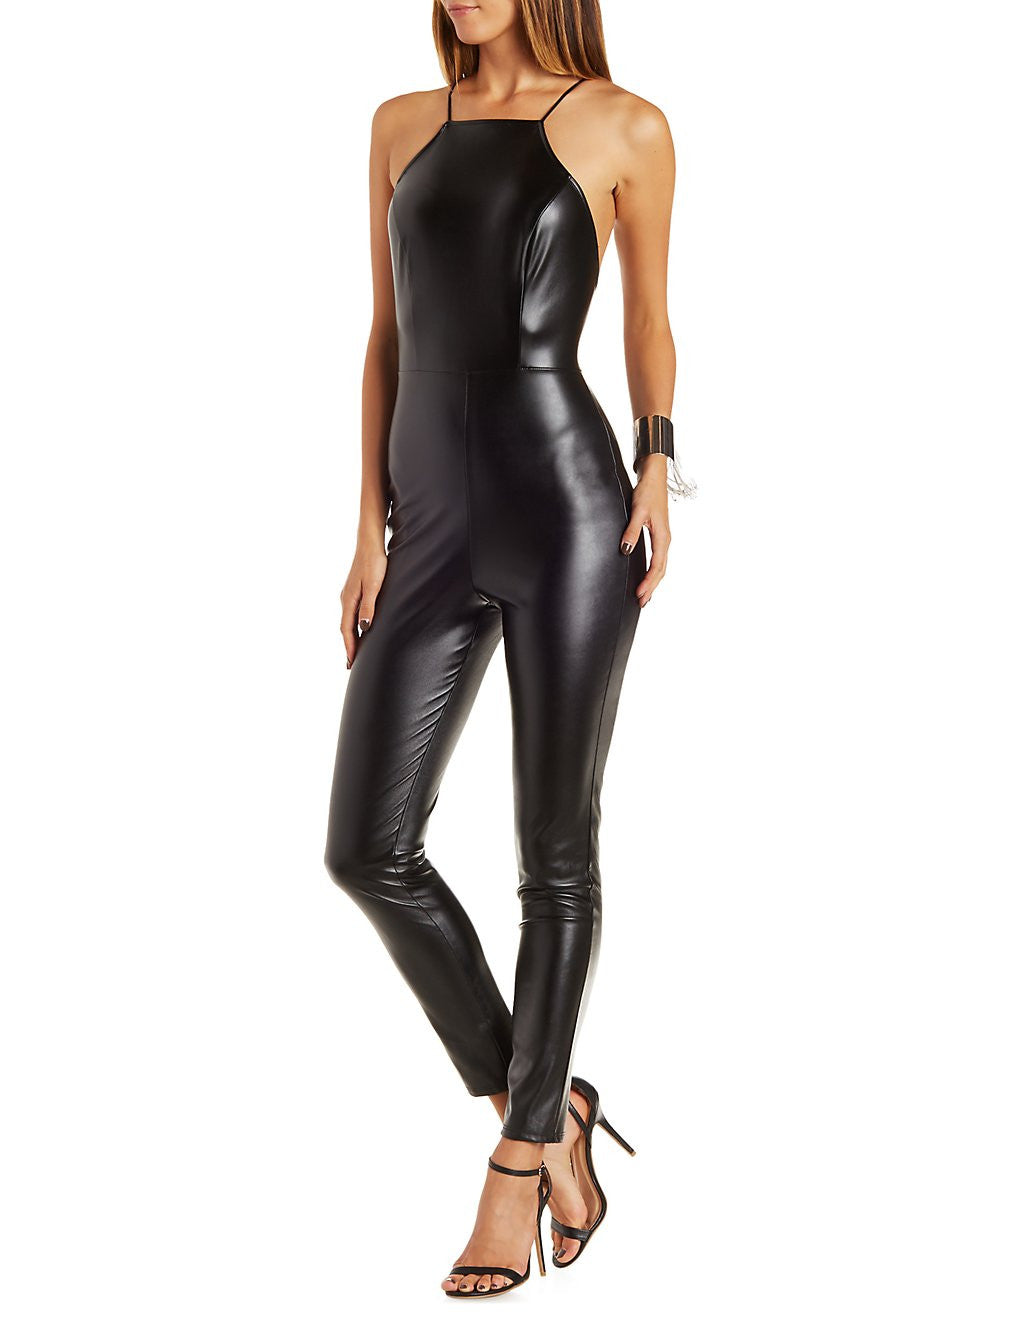 Hot Leather Jumpsuit For Women -  HOTLEATHERWORLD